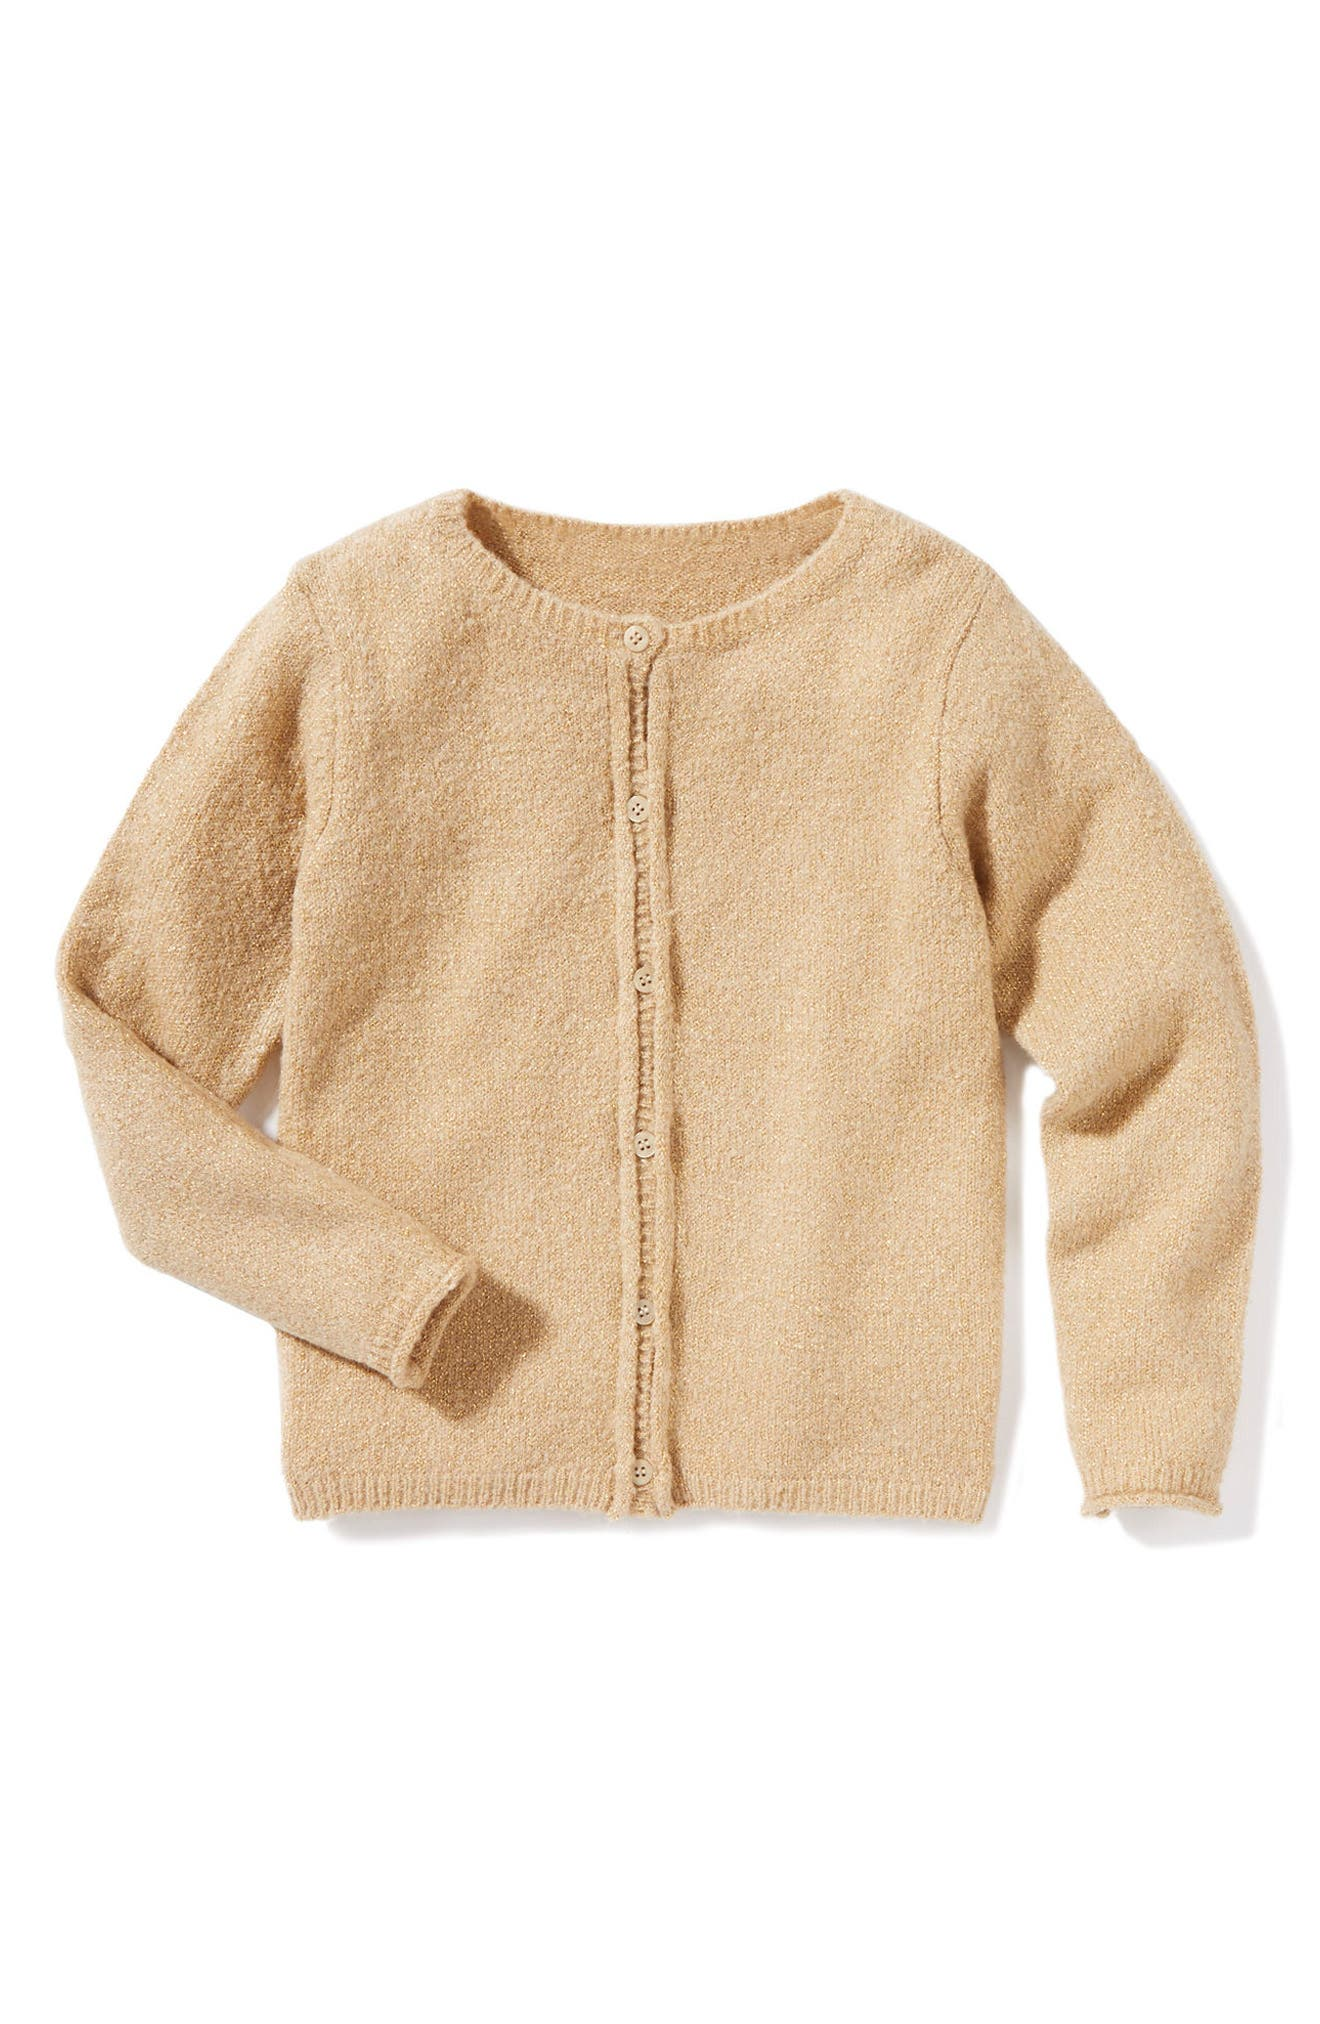 Peek Celine Cardigan (Toddler Girls, Little Girls & Big Girls)